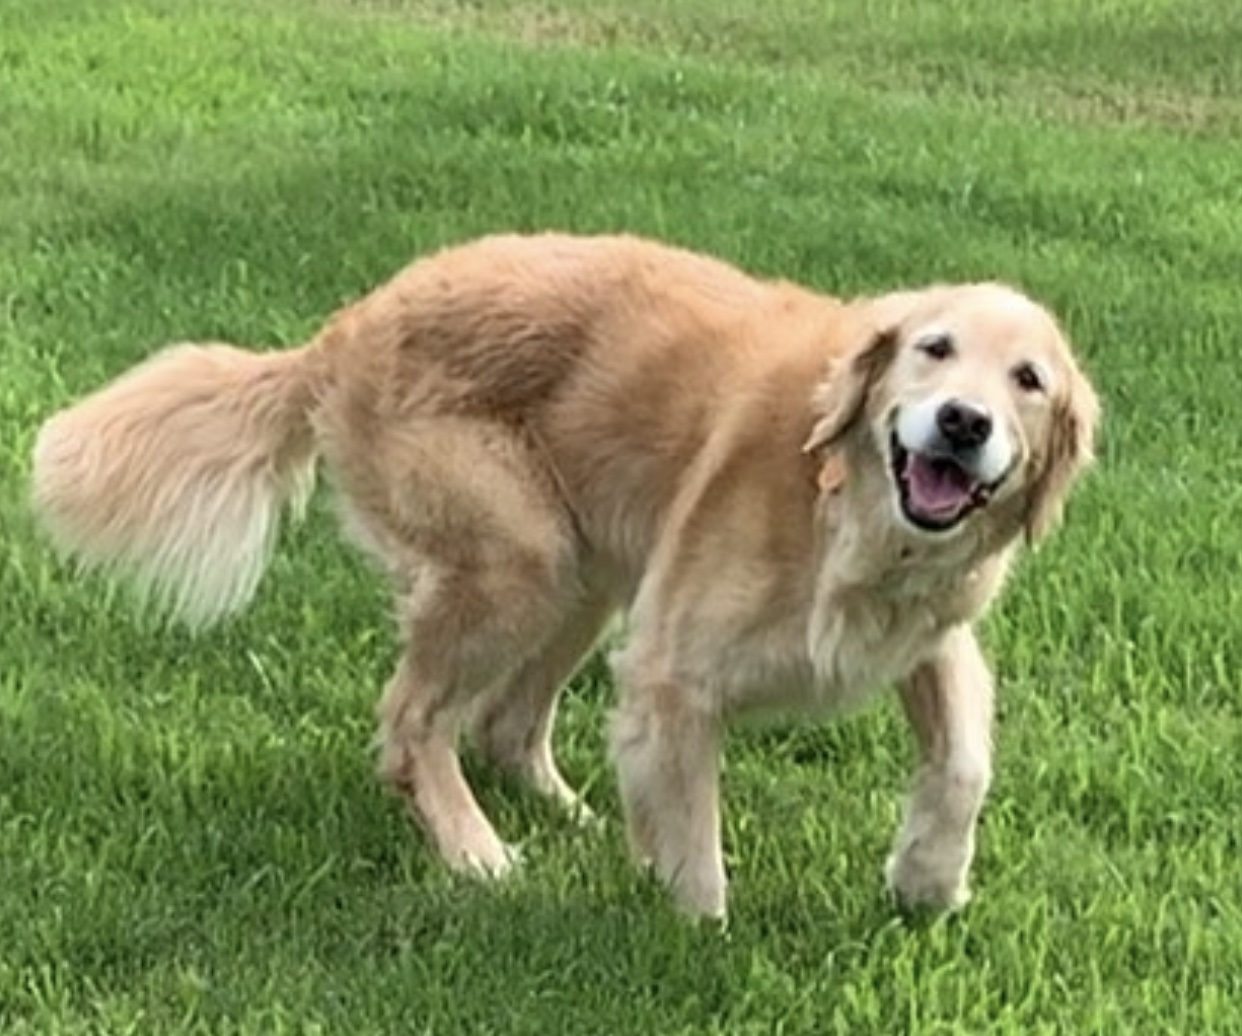 Dr. Twomey's Golden Retriever, Miley